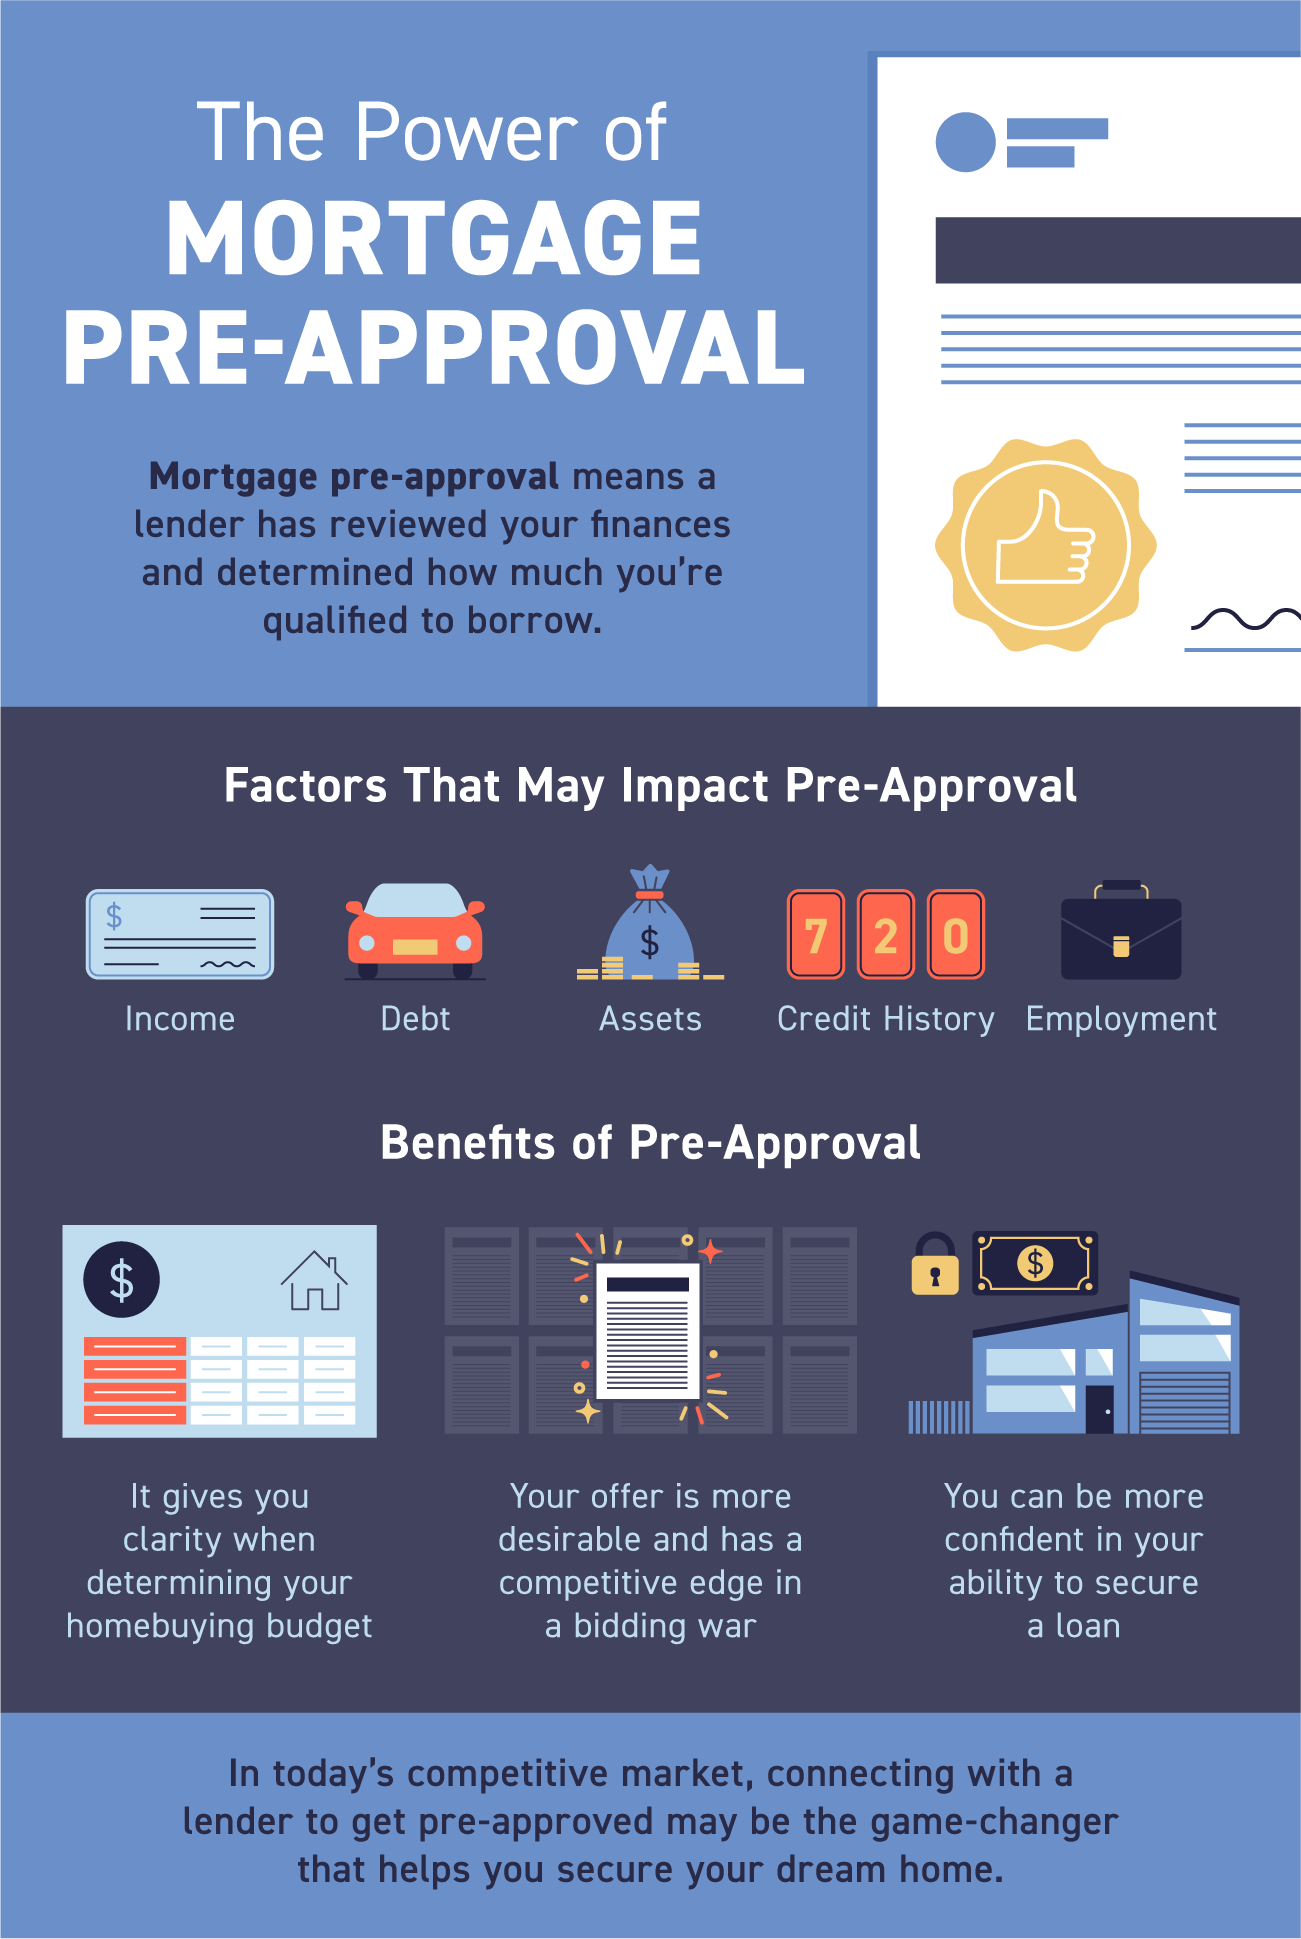 The Power of Mortgage Pre-Approval.png